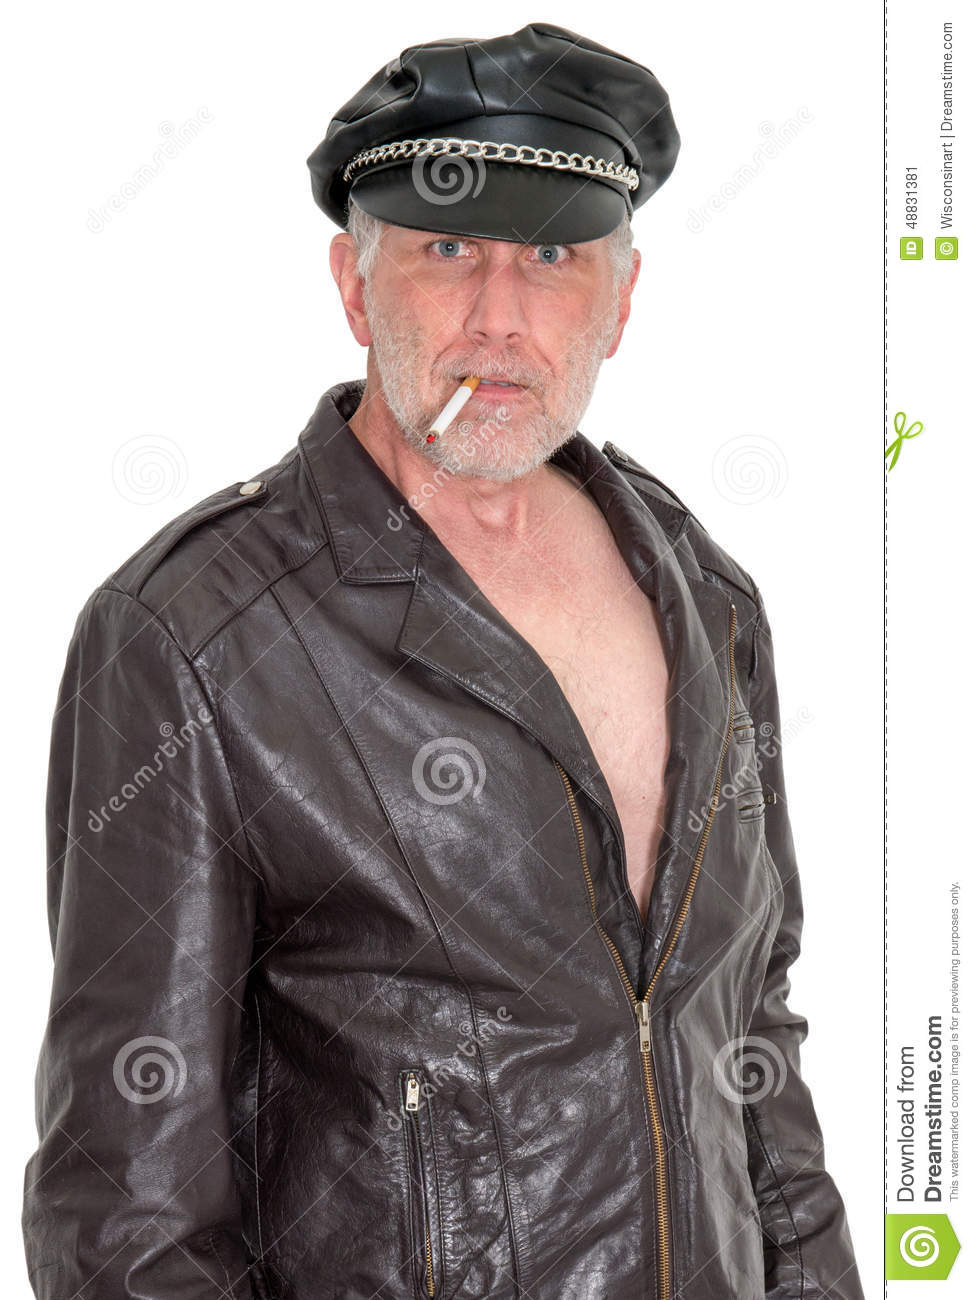 Fat Guy In Leather 88